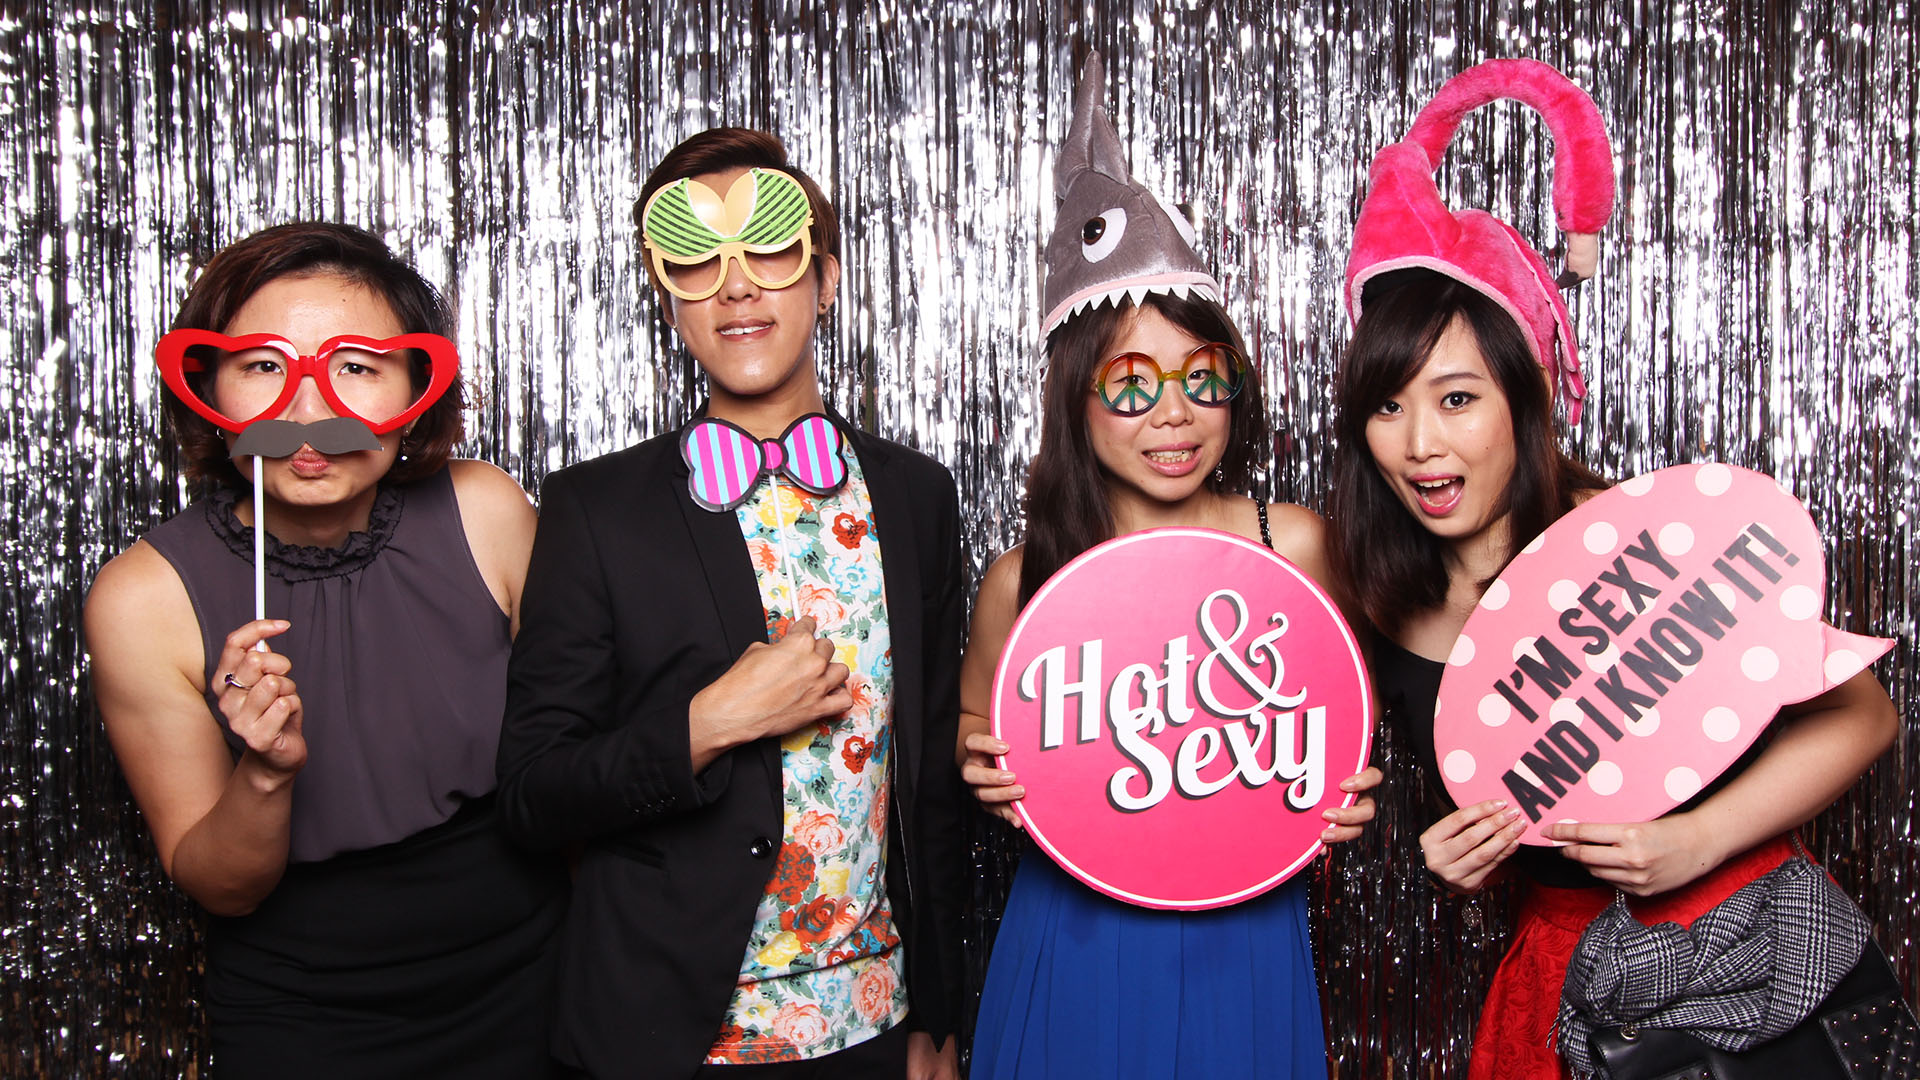 Fourstops • Singapore Photobooth • Dennis & Samantha Wedding Photobooth